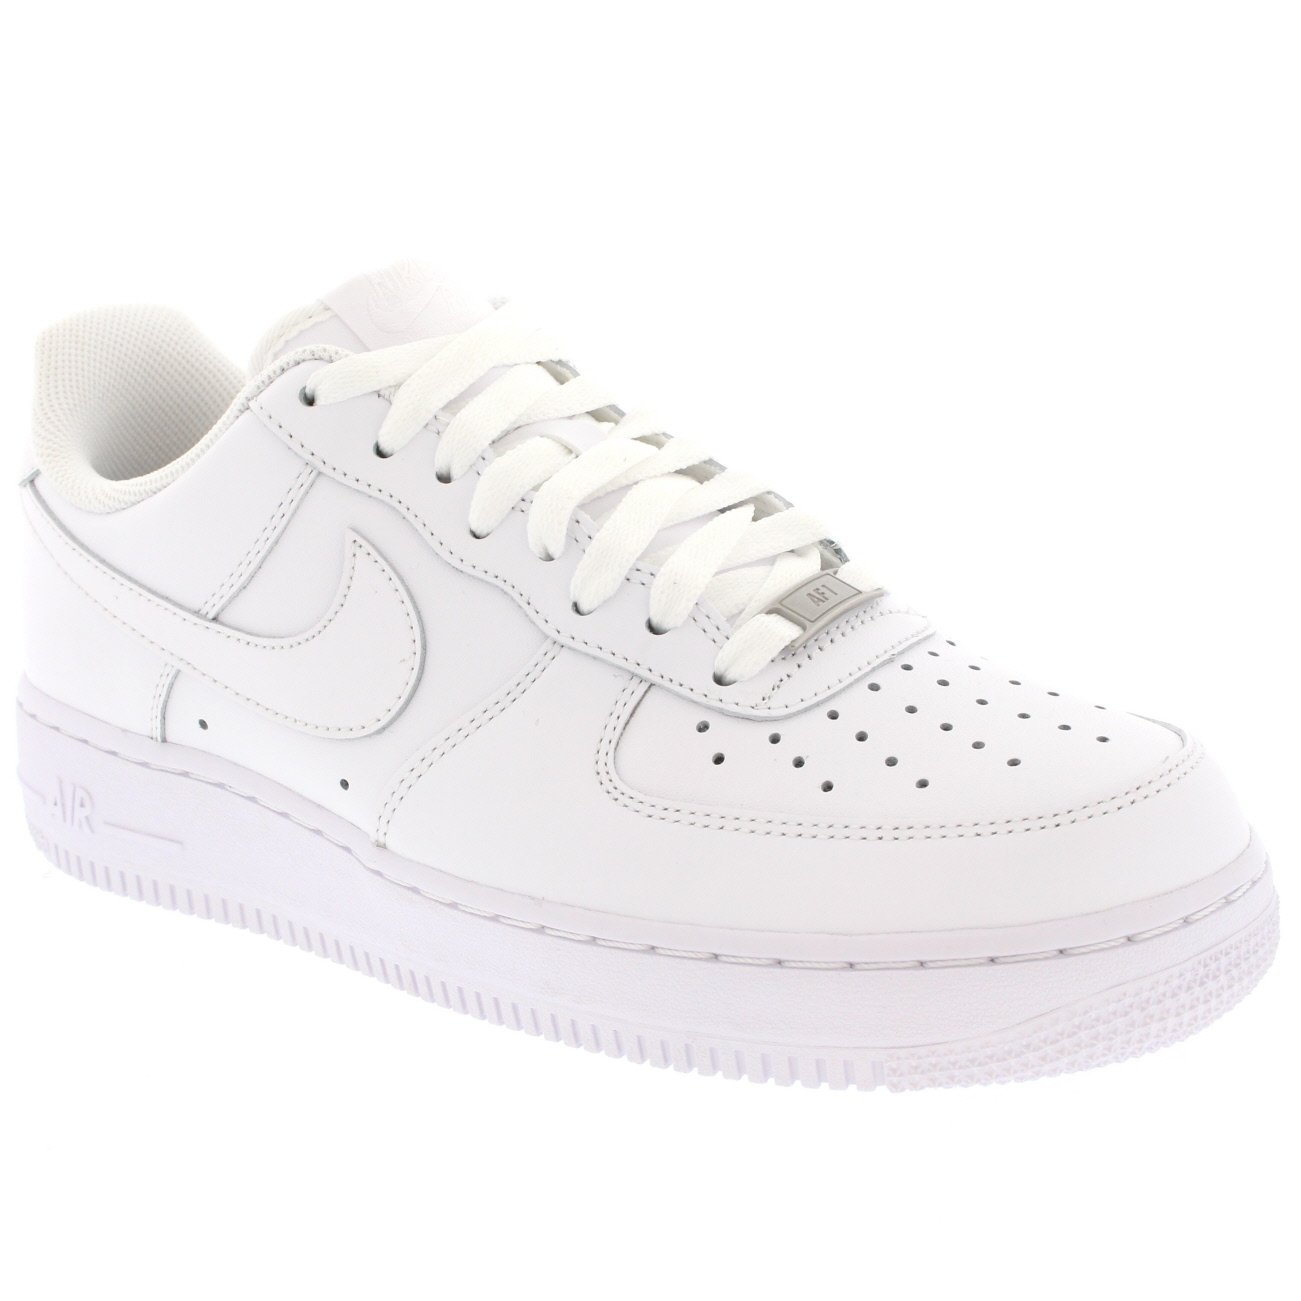 nike nike nike air force 1 07 occasionnel décolletée, dentelle cuir baskets blanches - blanc / Blanc  - 12 515c11